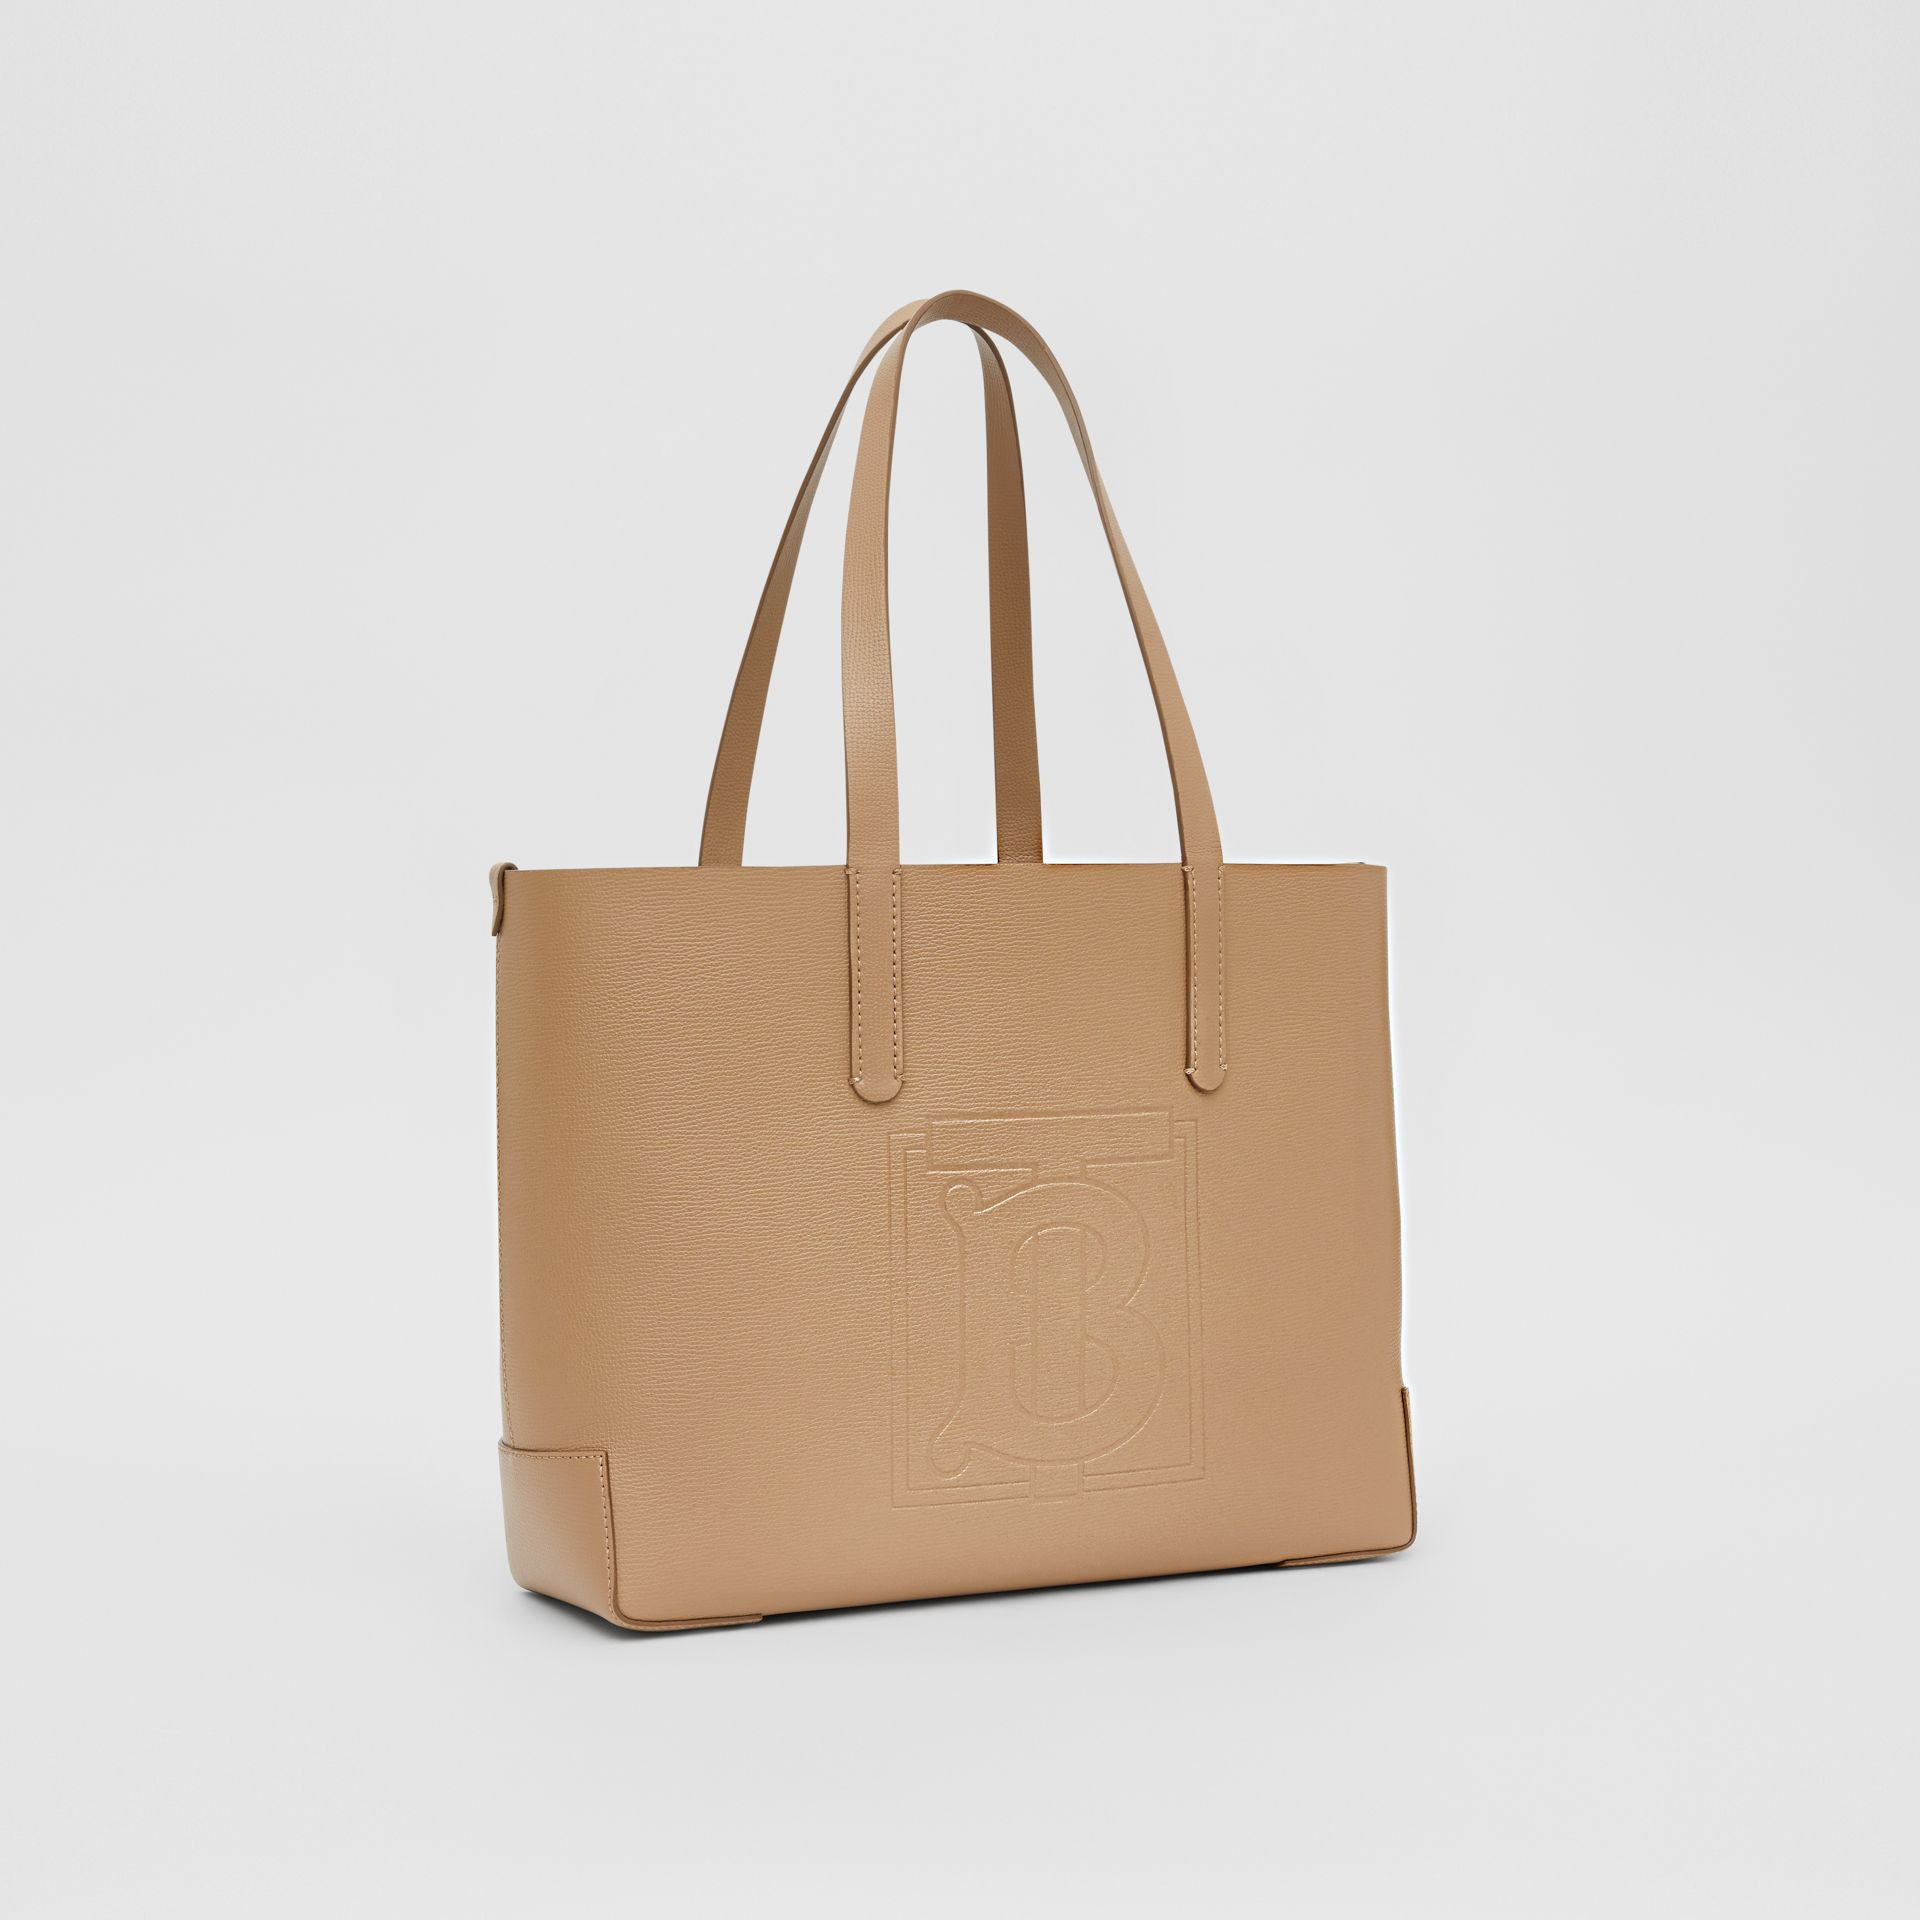 Embossed Monogram Motif Leather Tote in Camel - Women | Burberry United Kingdom - gallery image 8